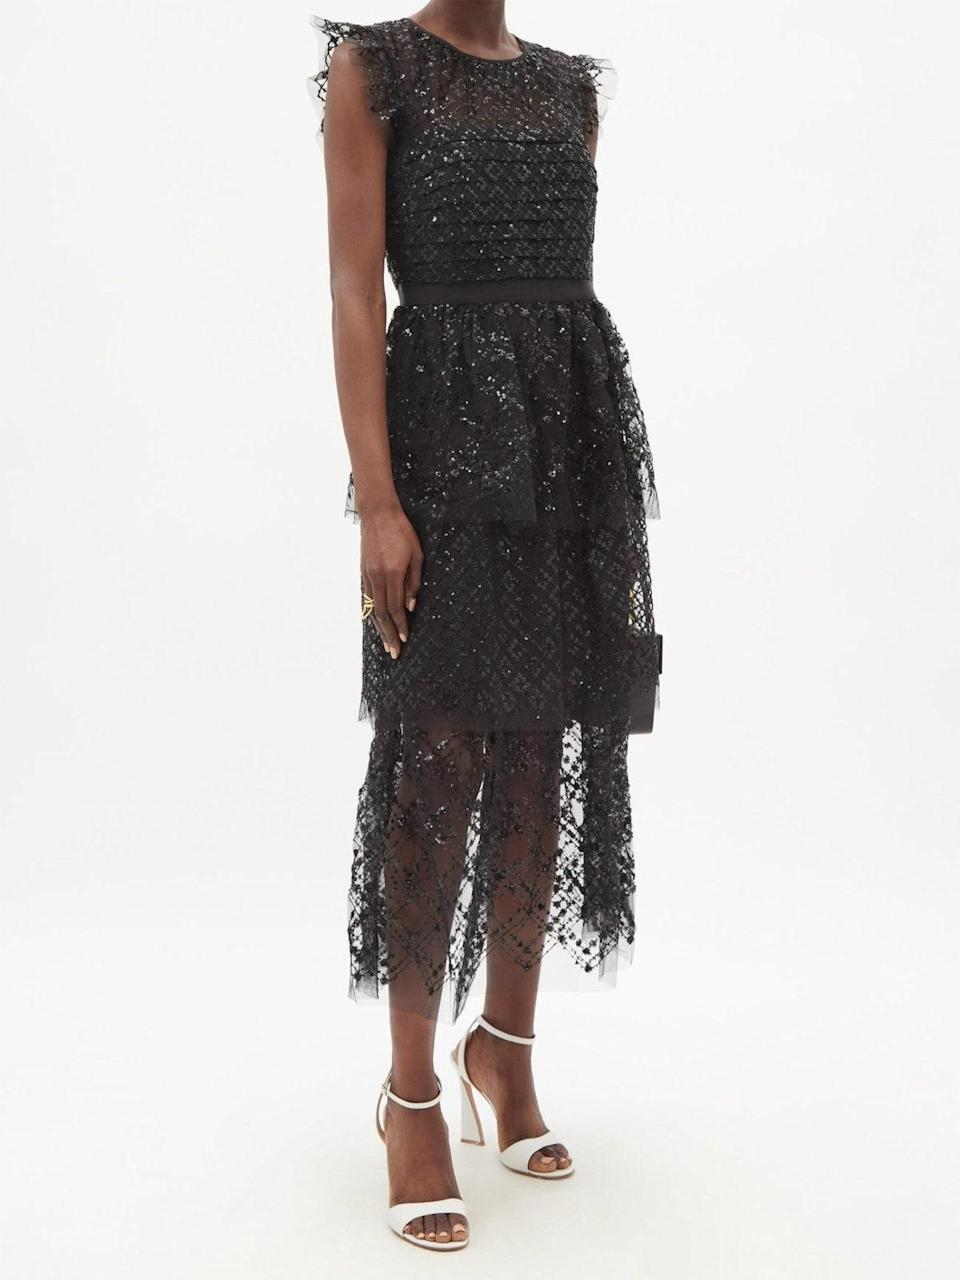 """Pixie fairy meets goth princess in this in tea-length beauty, complete with lace, chiffon ruffles, and fluttering short sleeves. $565, Matches Fashion. <a href=""""https://www.matchesfashion.com/us/products/Self-Portrait-Tiered-sequinned-chiffon-midi-dress-1436938"""" rel=""""nofollow noopener"""" target=""""_blank"""" data-ylk=""""slk:Get it now!"""" class=""""link rapid-noclick-resp"""">Get it now!</a>"""